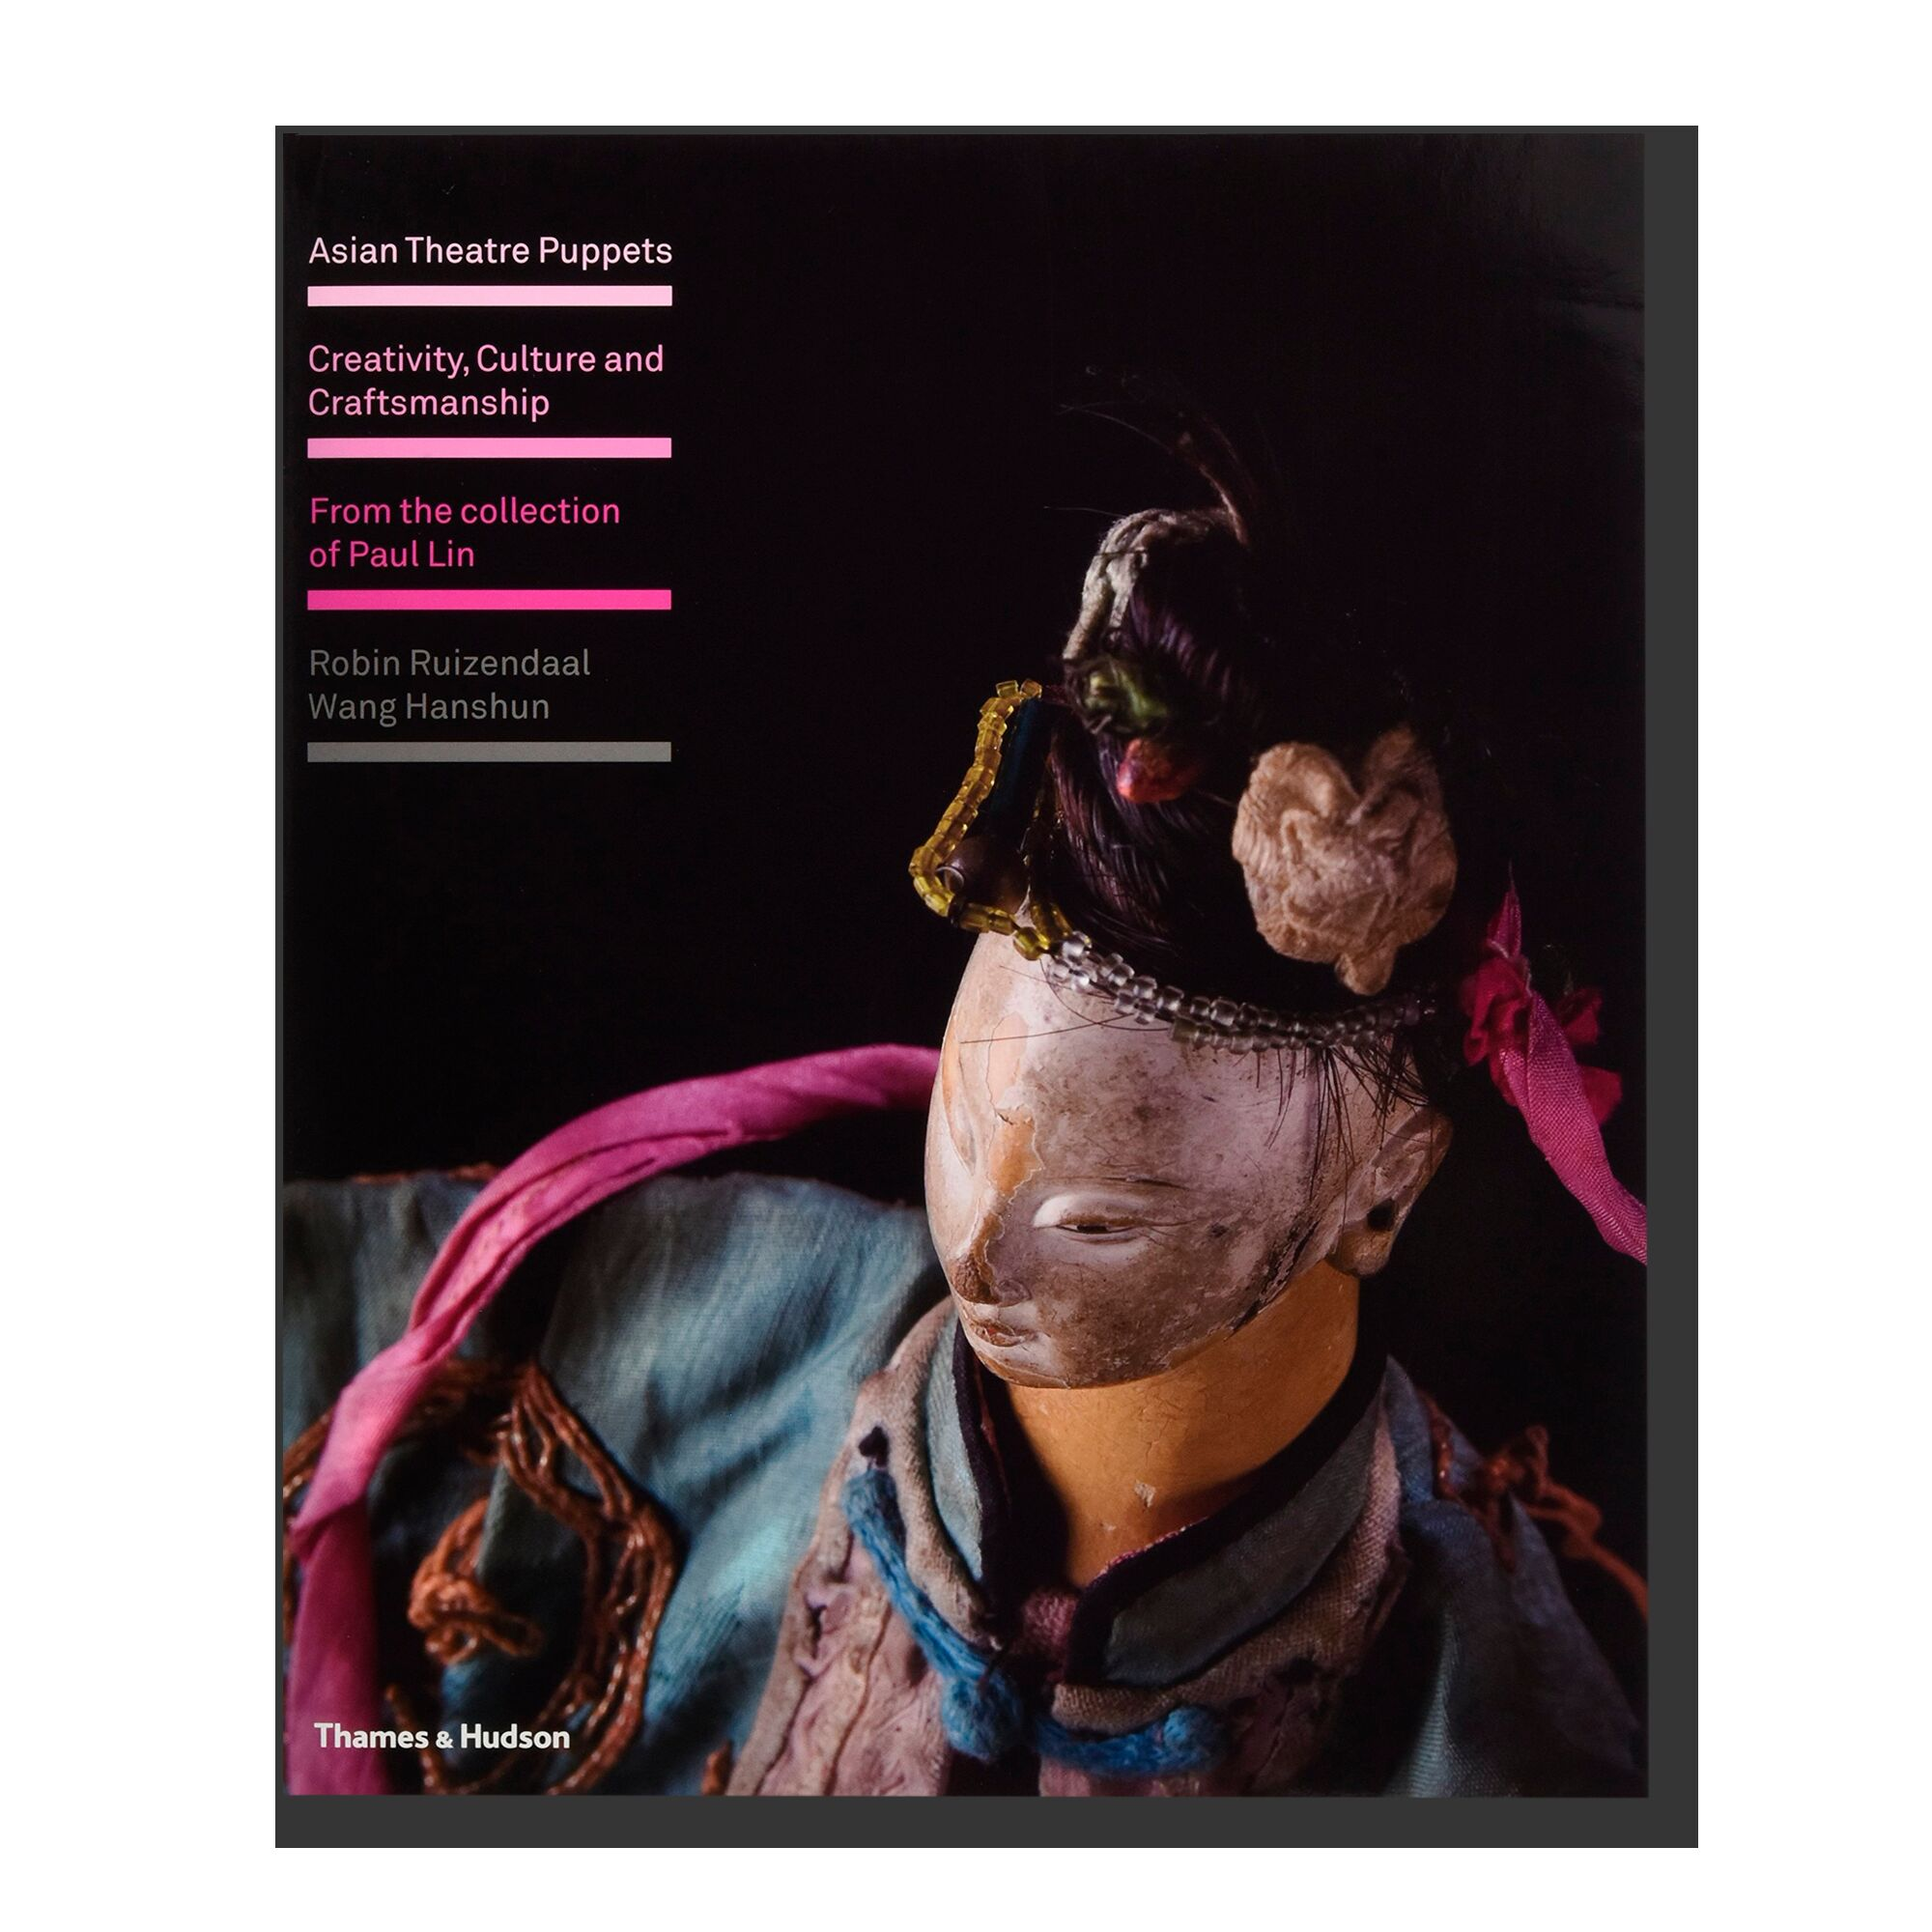 Asian Theatre Puppets: Creativity, Culture and Craftmanship